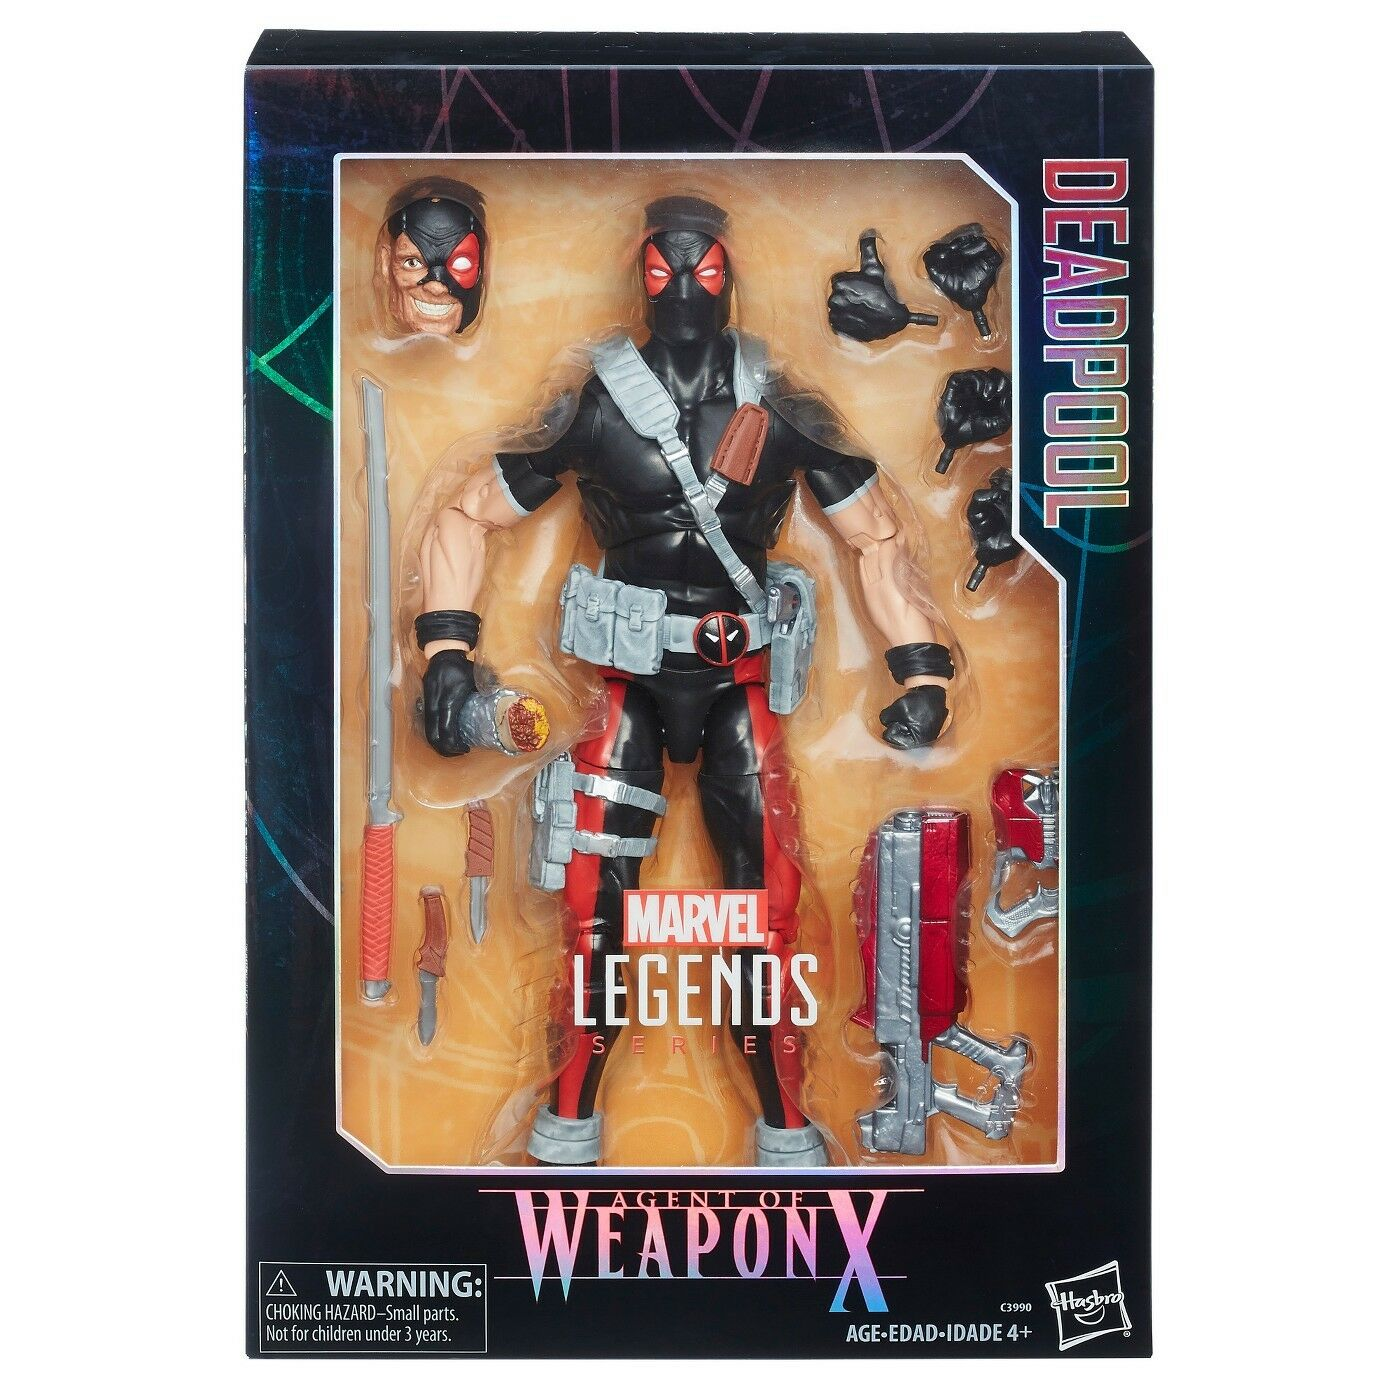 MARVEL LEGENDS SERIES DEADPOOL AGENT OF WEAPON X 12 Inch Action Figure Brand New